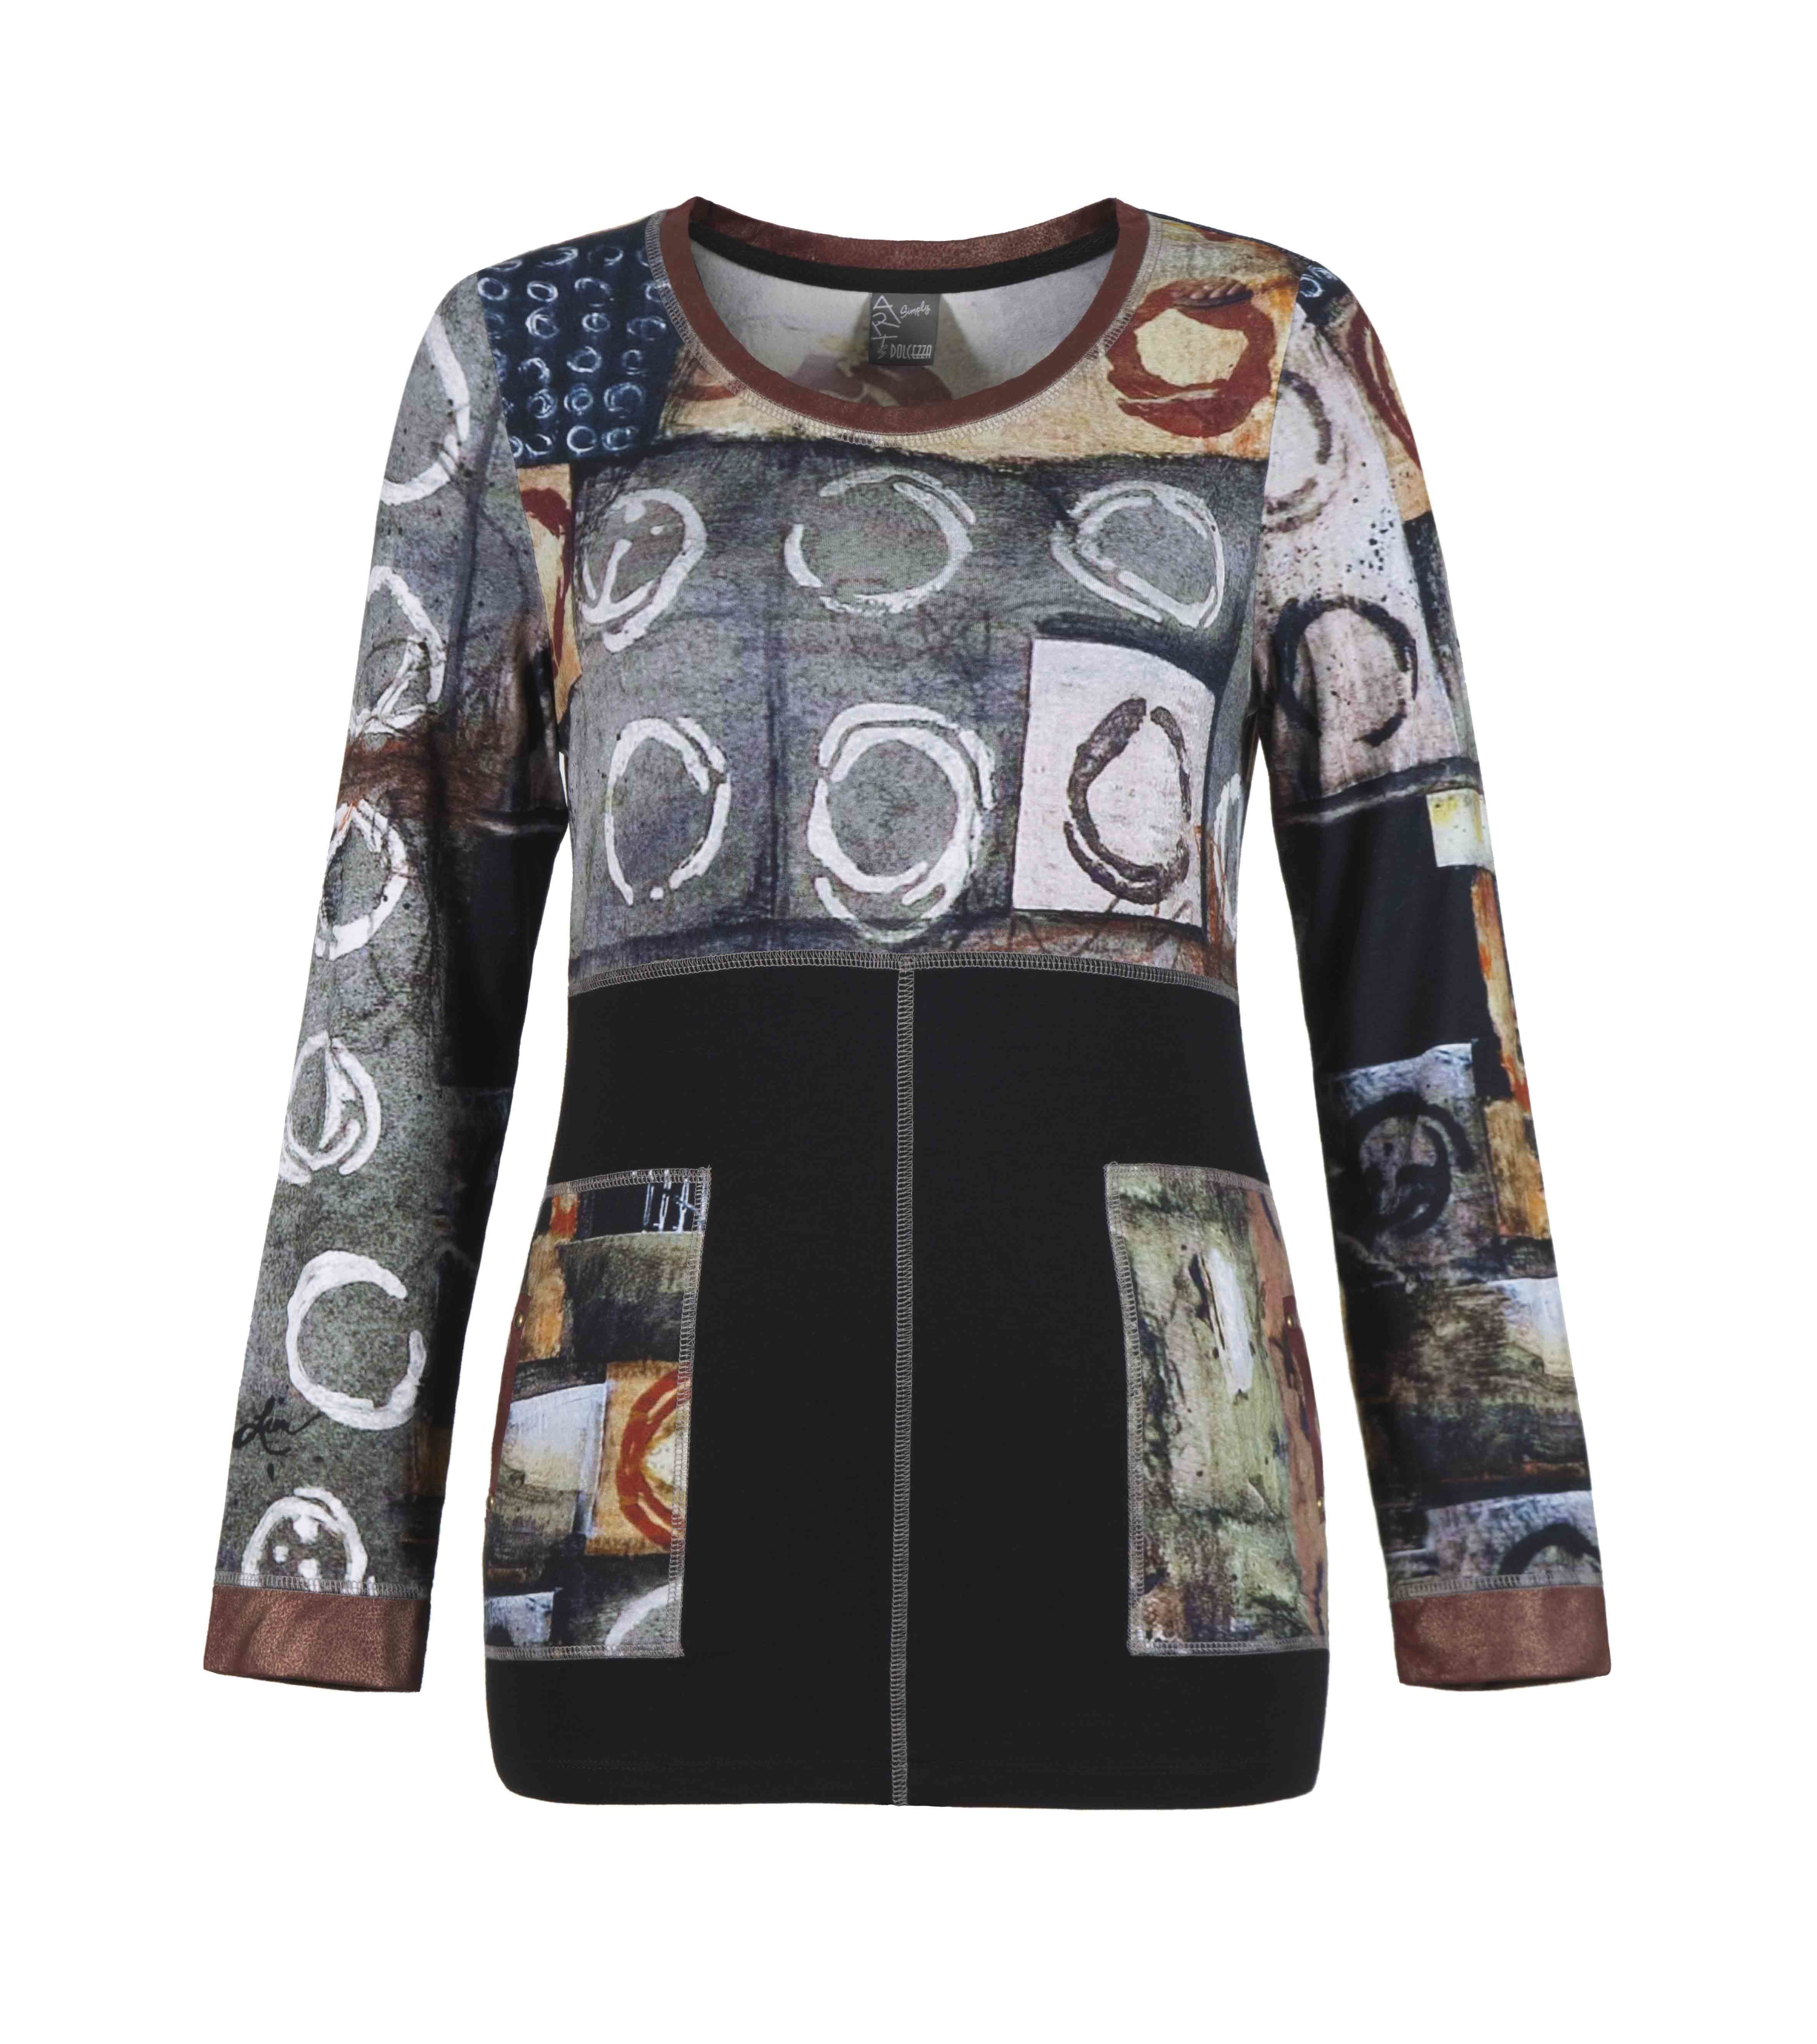 Simply Art Dolcezza: Exotic Truffle Collection Abstract Flutter Tunic DOLCEZZA_SIMPLYART_58621